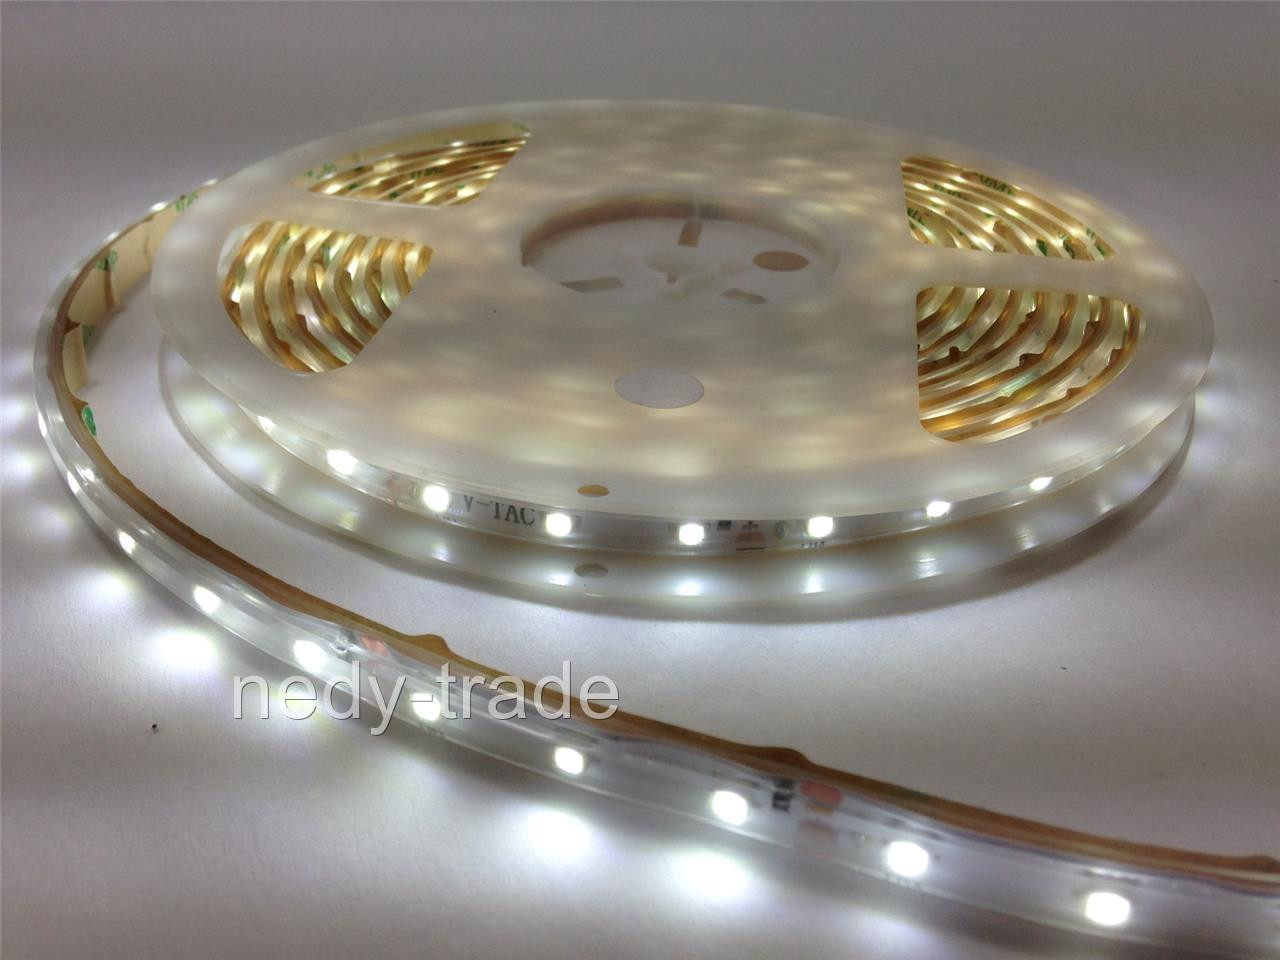 12v led leiste wei wasserdicht 5m led streifen strip lichter auto lkw kfz pkw ebay. Black Bedroom Furniture Sets. Home Design Ideas